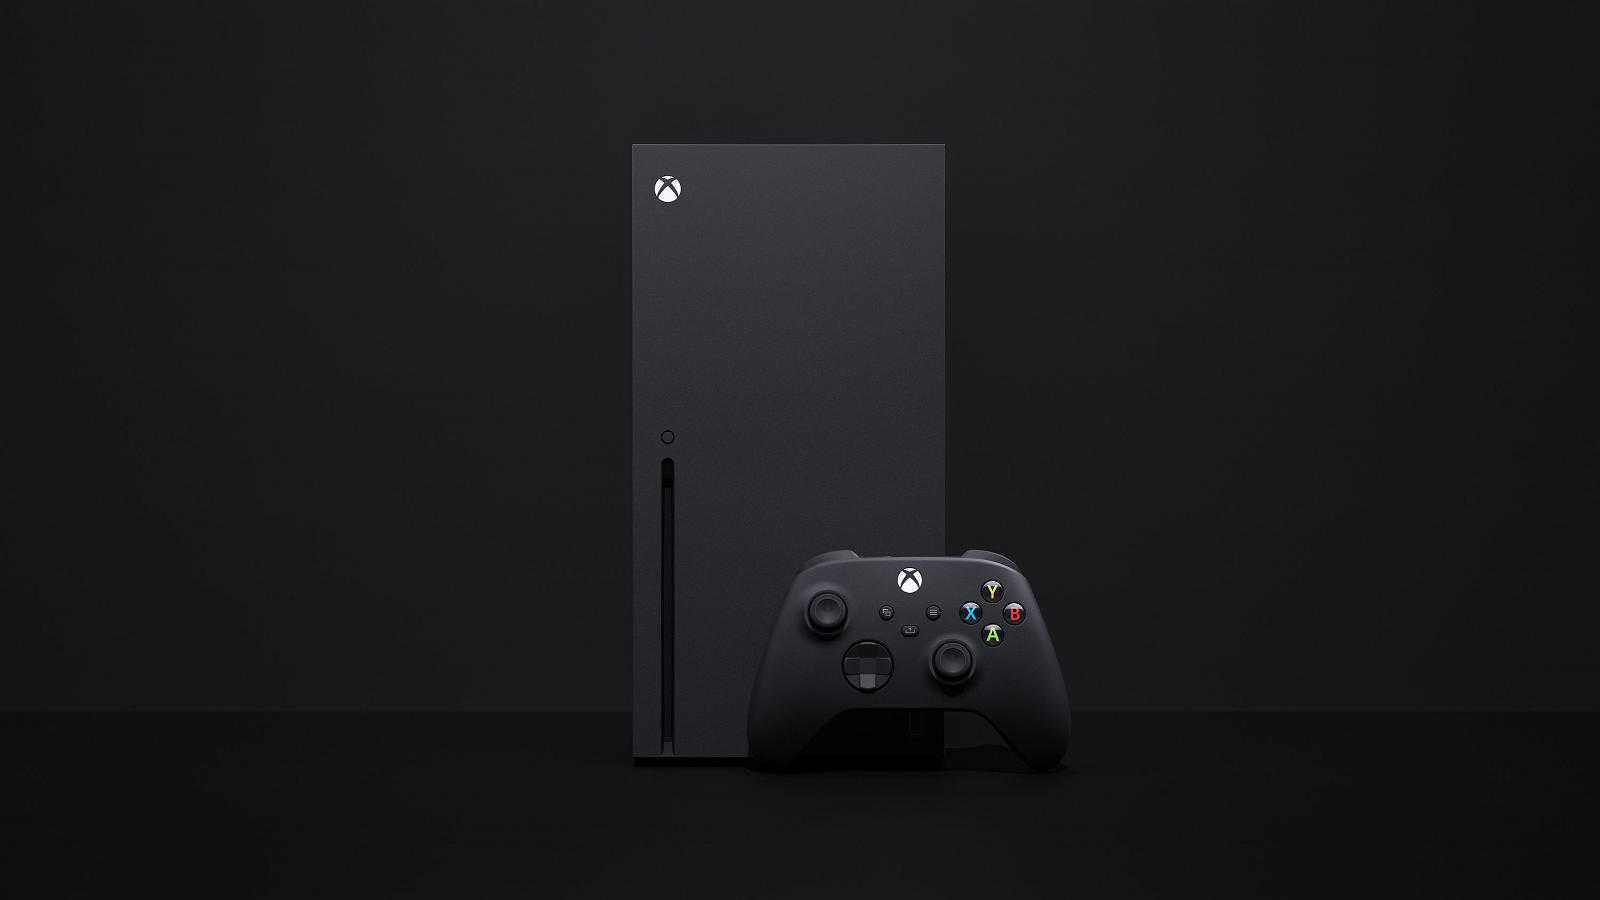 Microsoft is very satisfied with the price and performance of Xbox series X, and the final pricing is still flexible